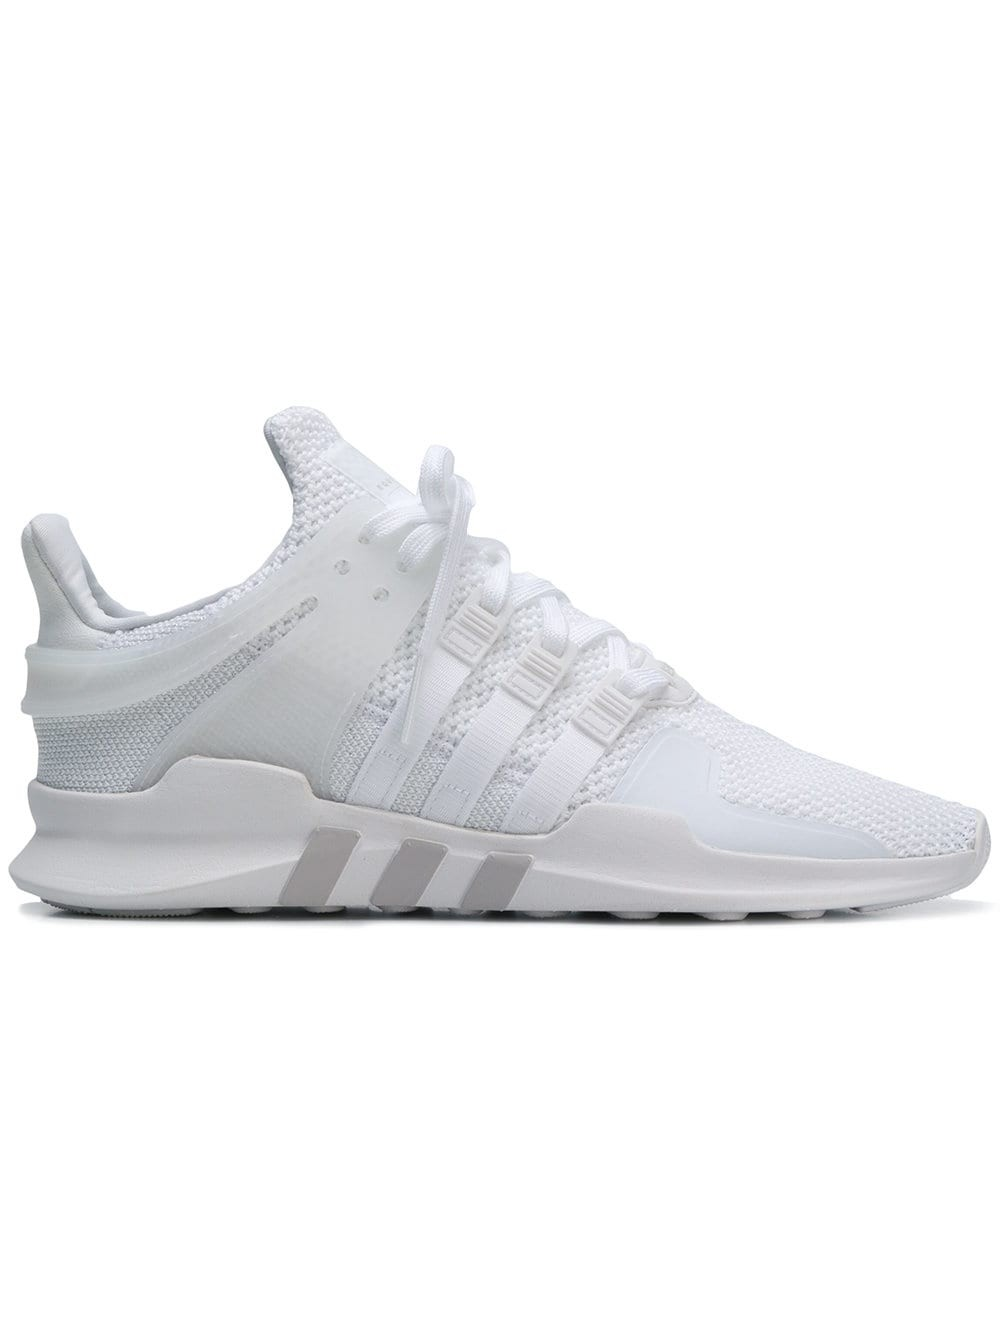 Adidas EQT Support ADV Femme Blanche/Gris AQ0916